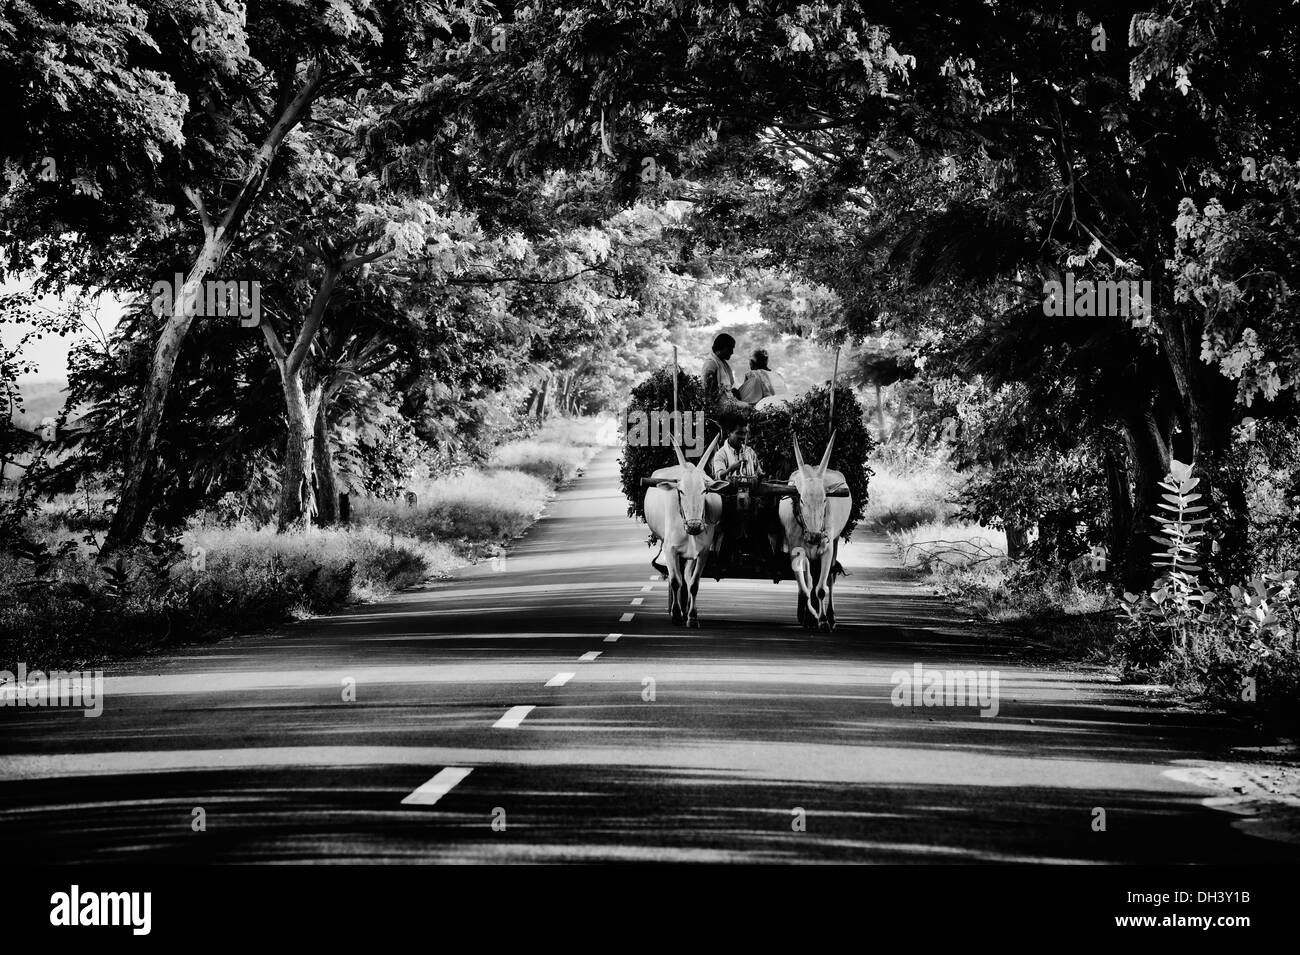 Indian farm workers with harvested peanut plants on a a bullock cart in the rural indian countryside. Andhra Pradesh, India. Black and White. - Stock Image